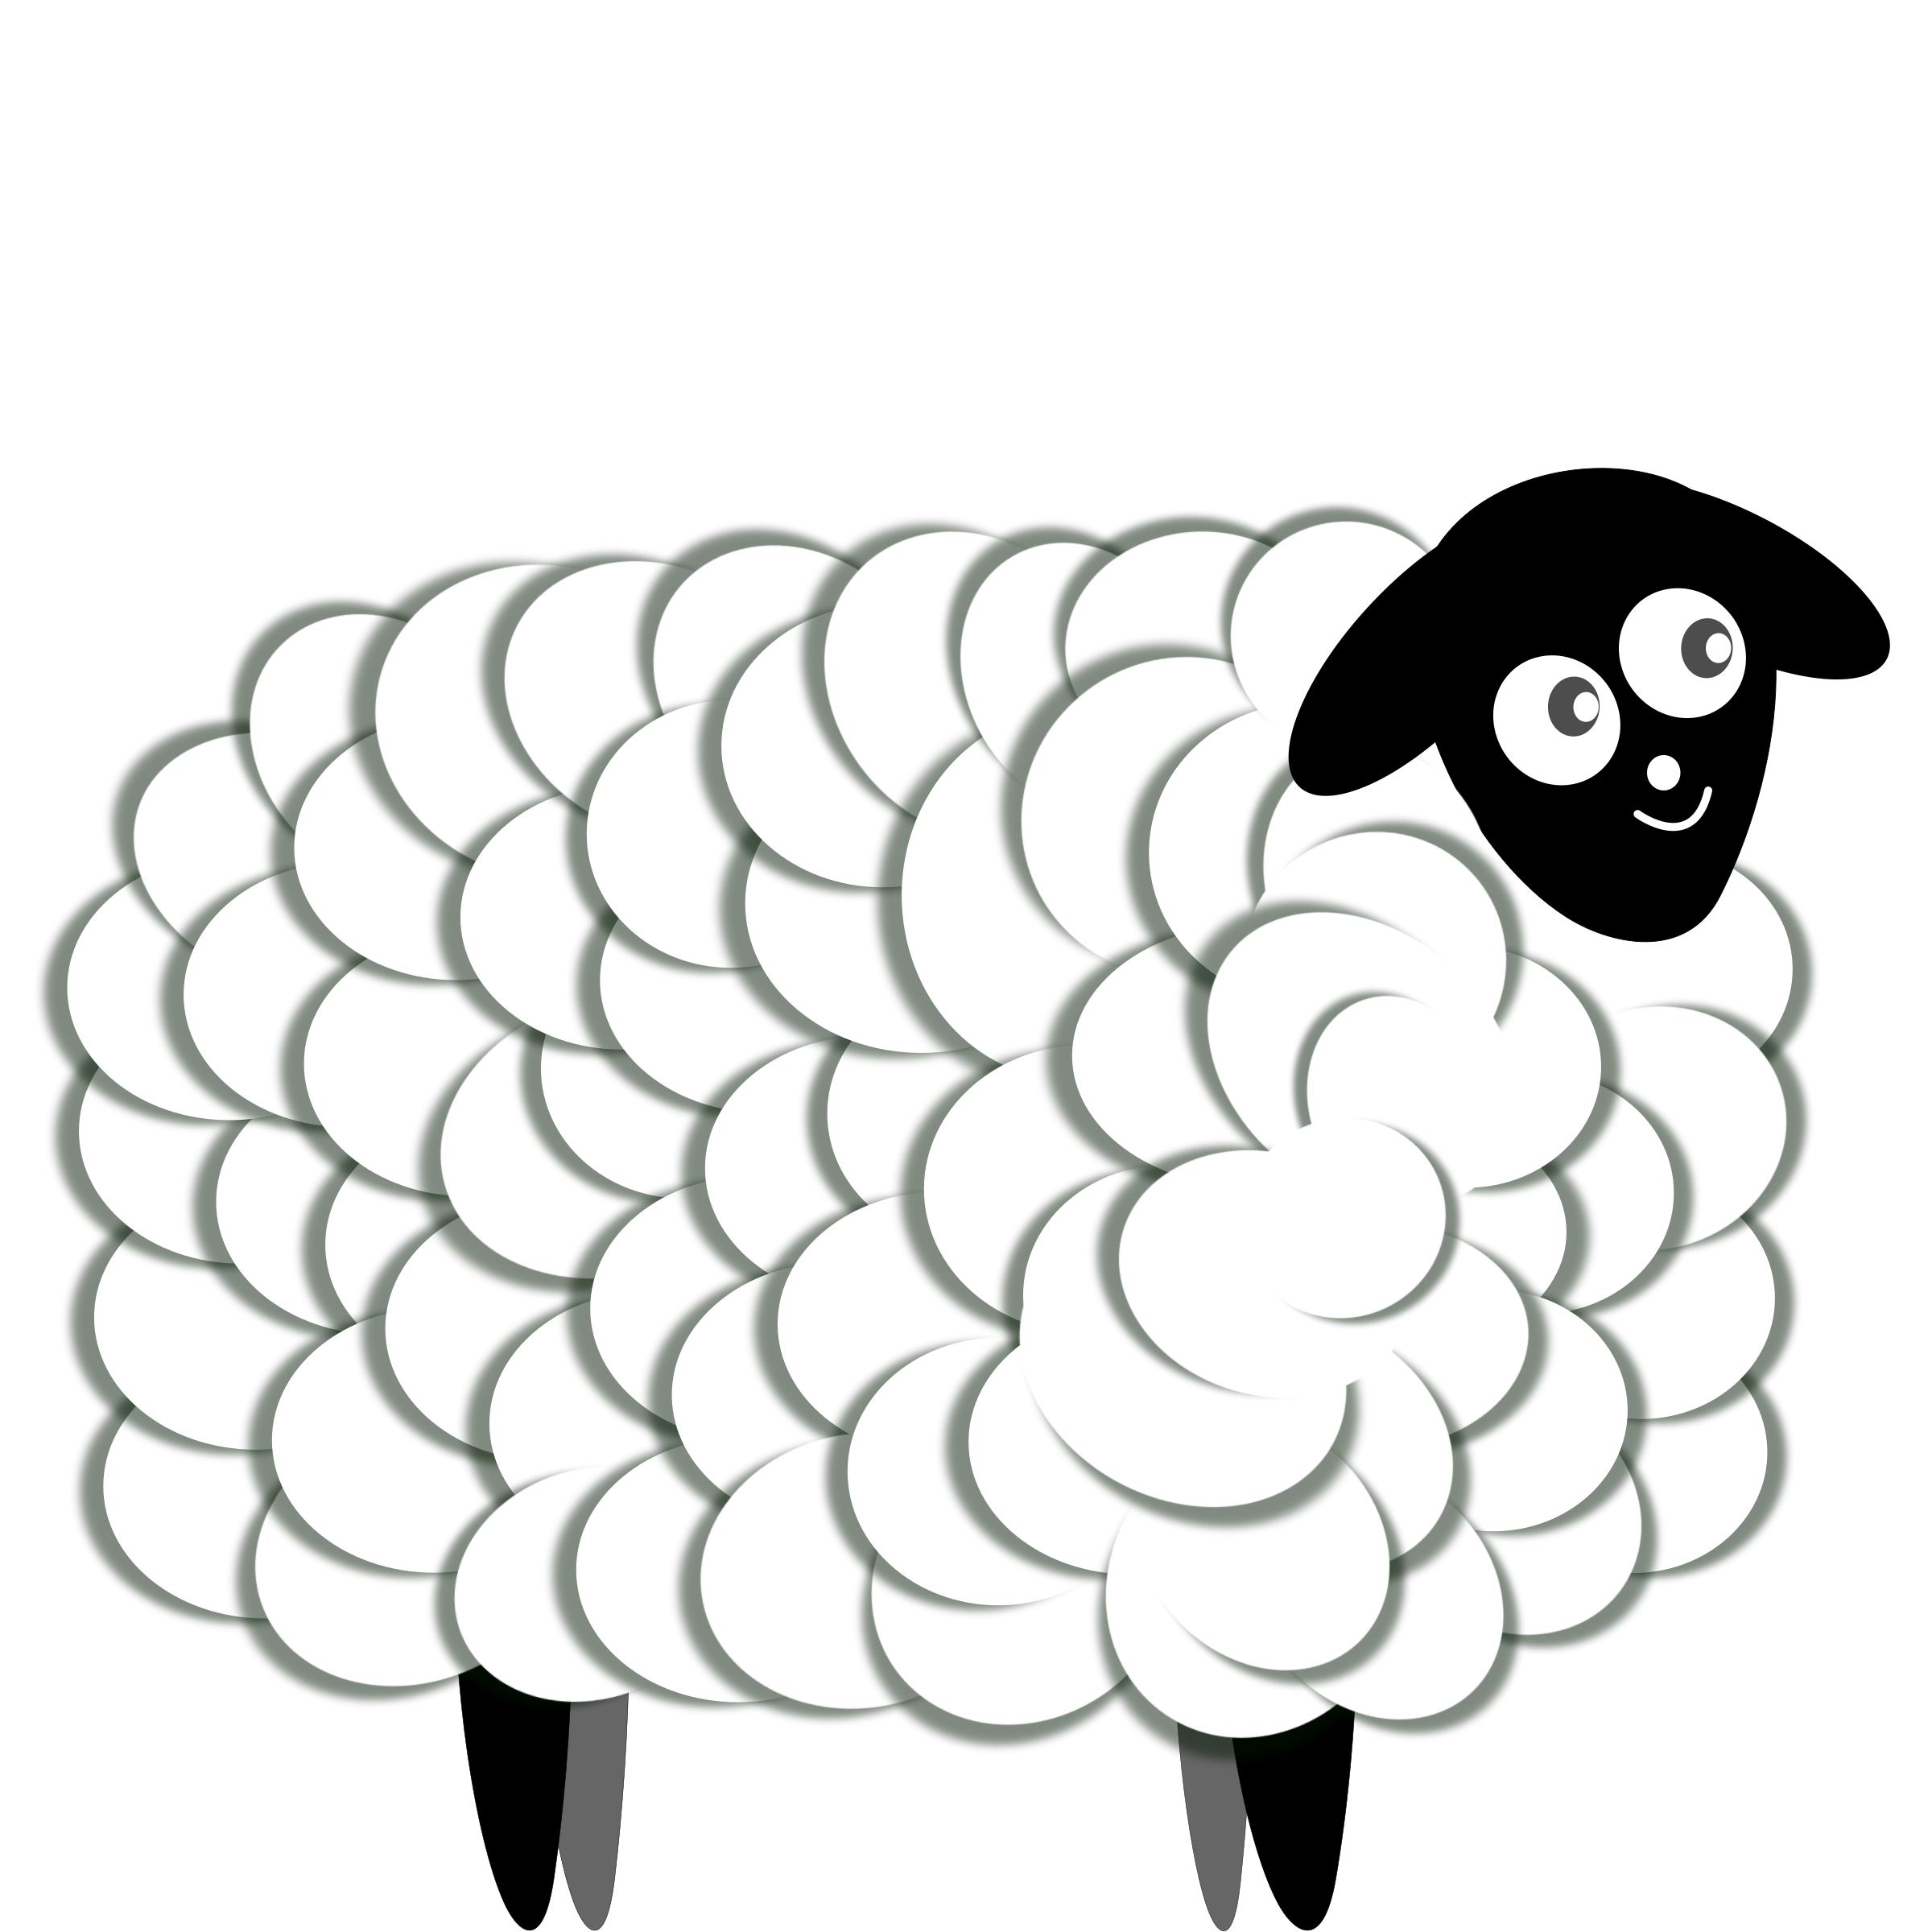 Sheep clipart fluffy sheep. Two color big image